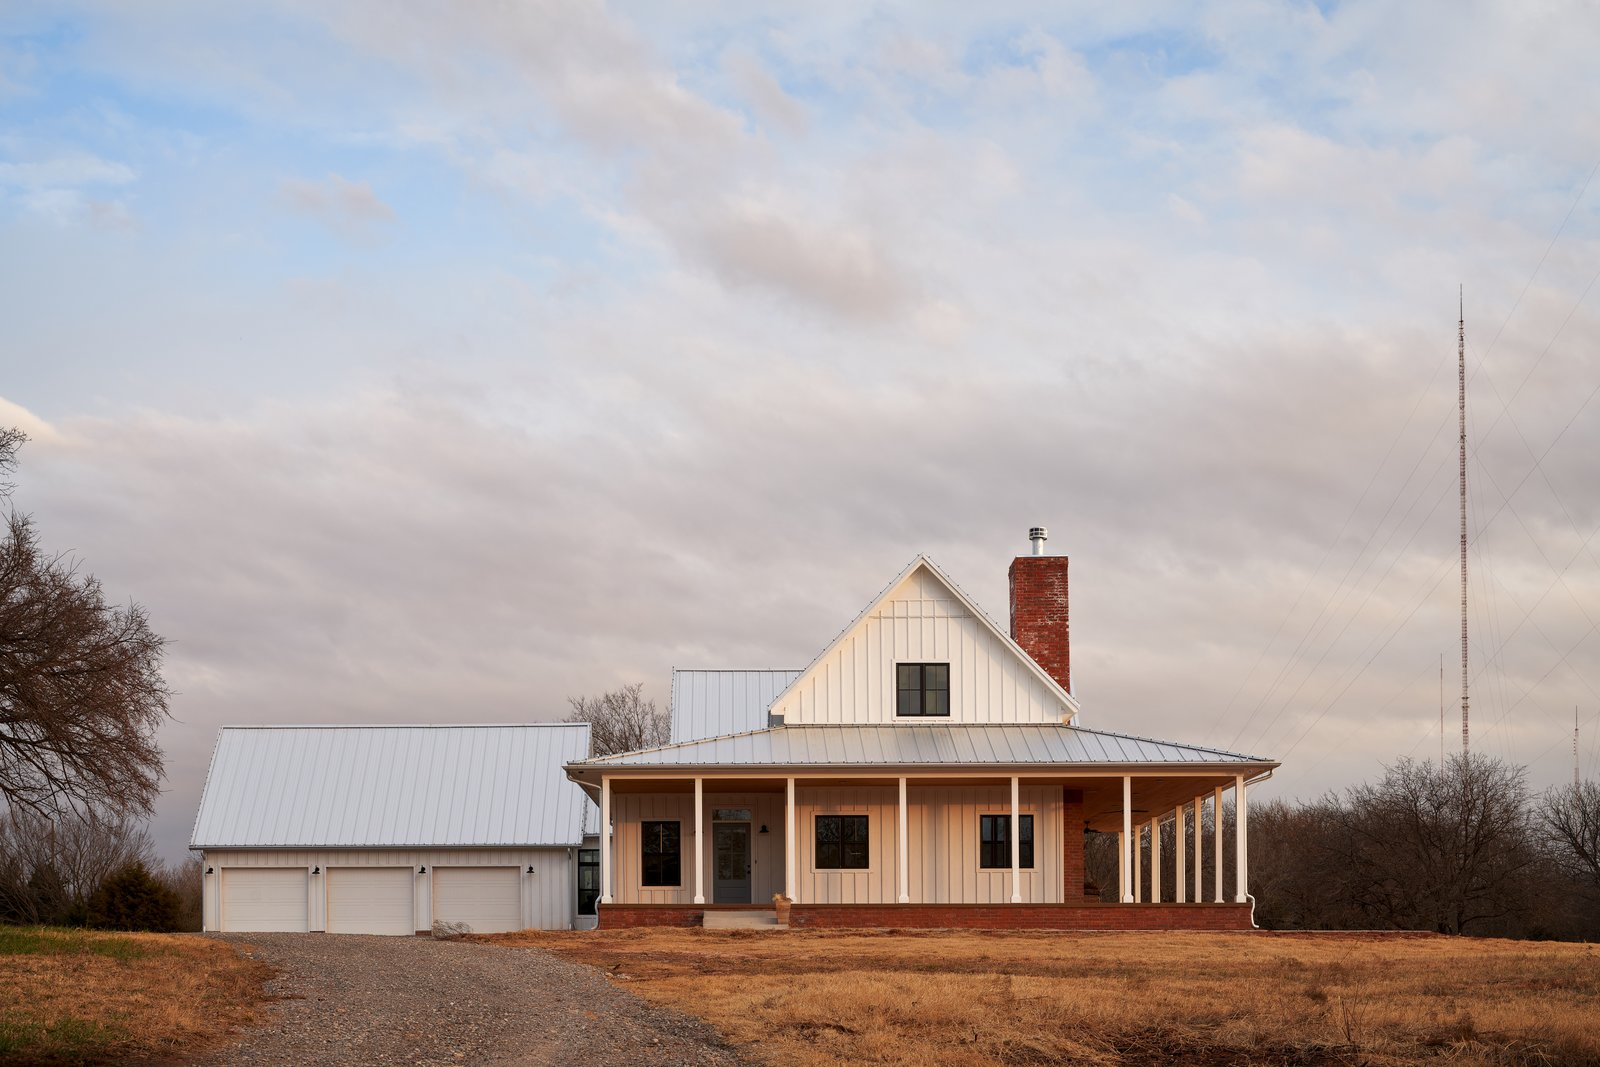 Exterior, Wood Siding Material, Gable RoofLine, House Building Type, and Metal Roof Material After passing through a small grove of trees at the front of the property, the drive turns toward the front view of the farmhouse.   OKC Farmhouse by Scharbach Workshop